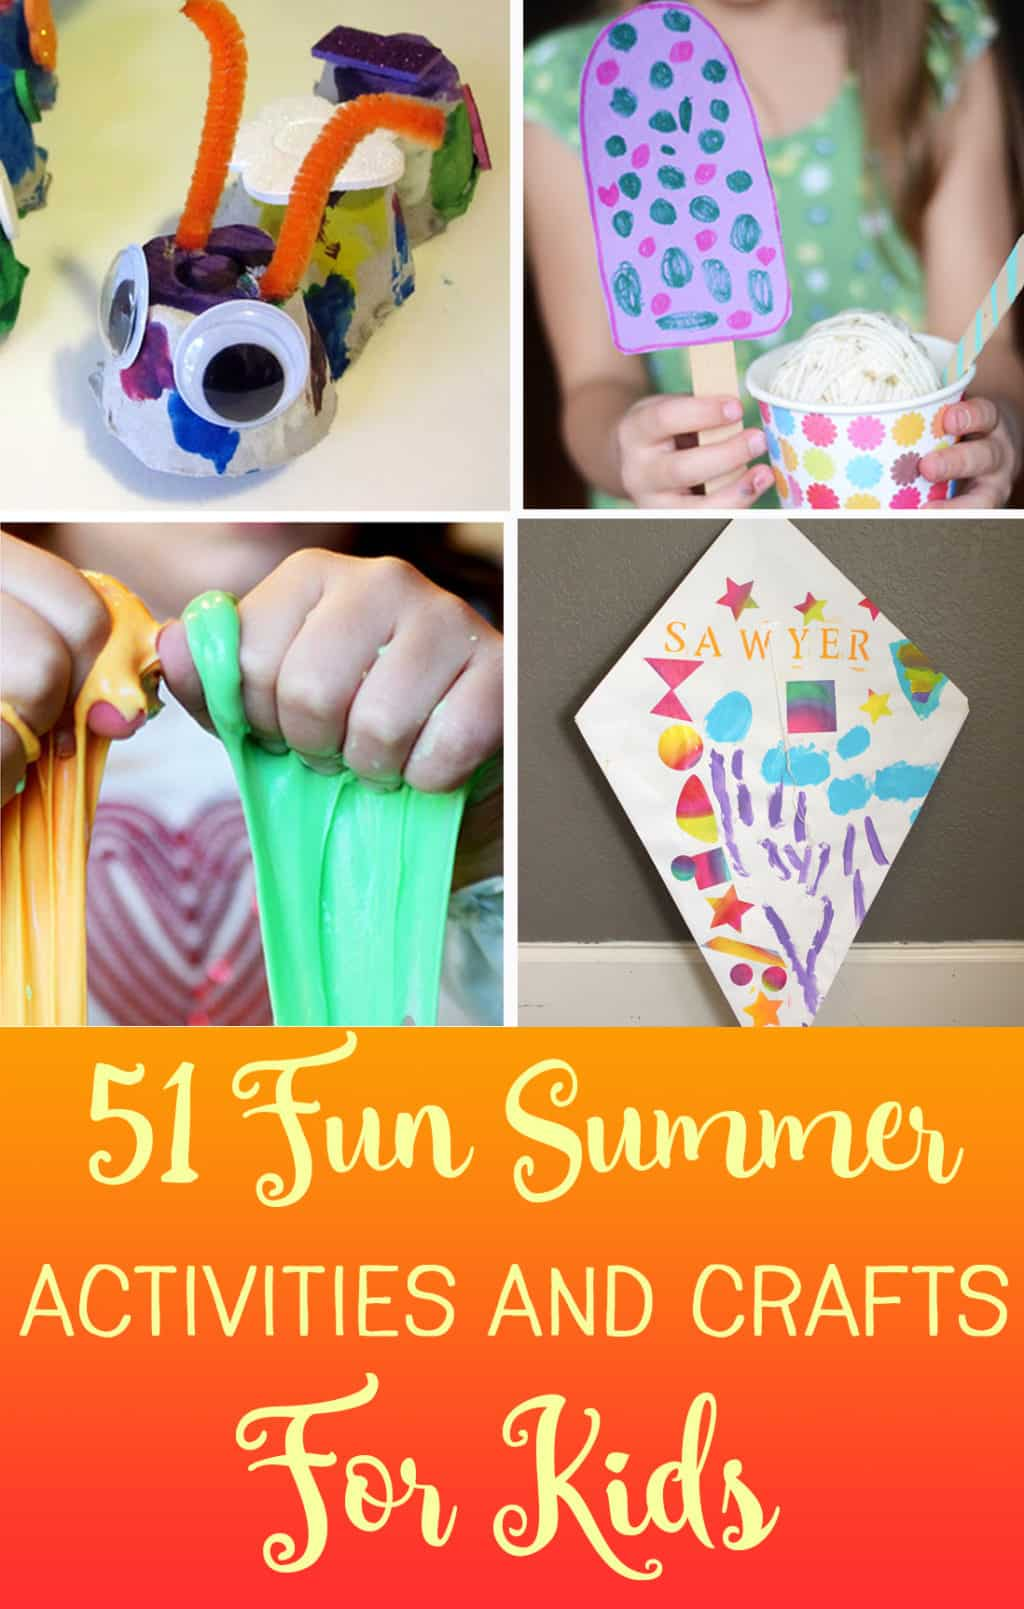 51 Summer Activities And Easy Crafts For Kids